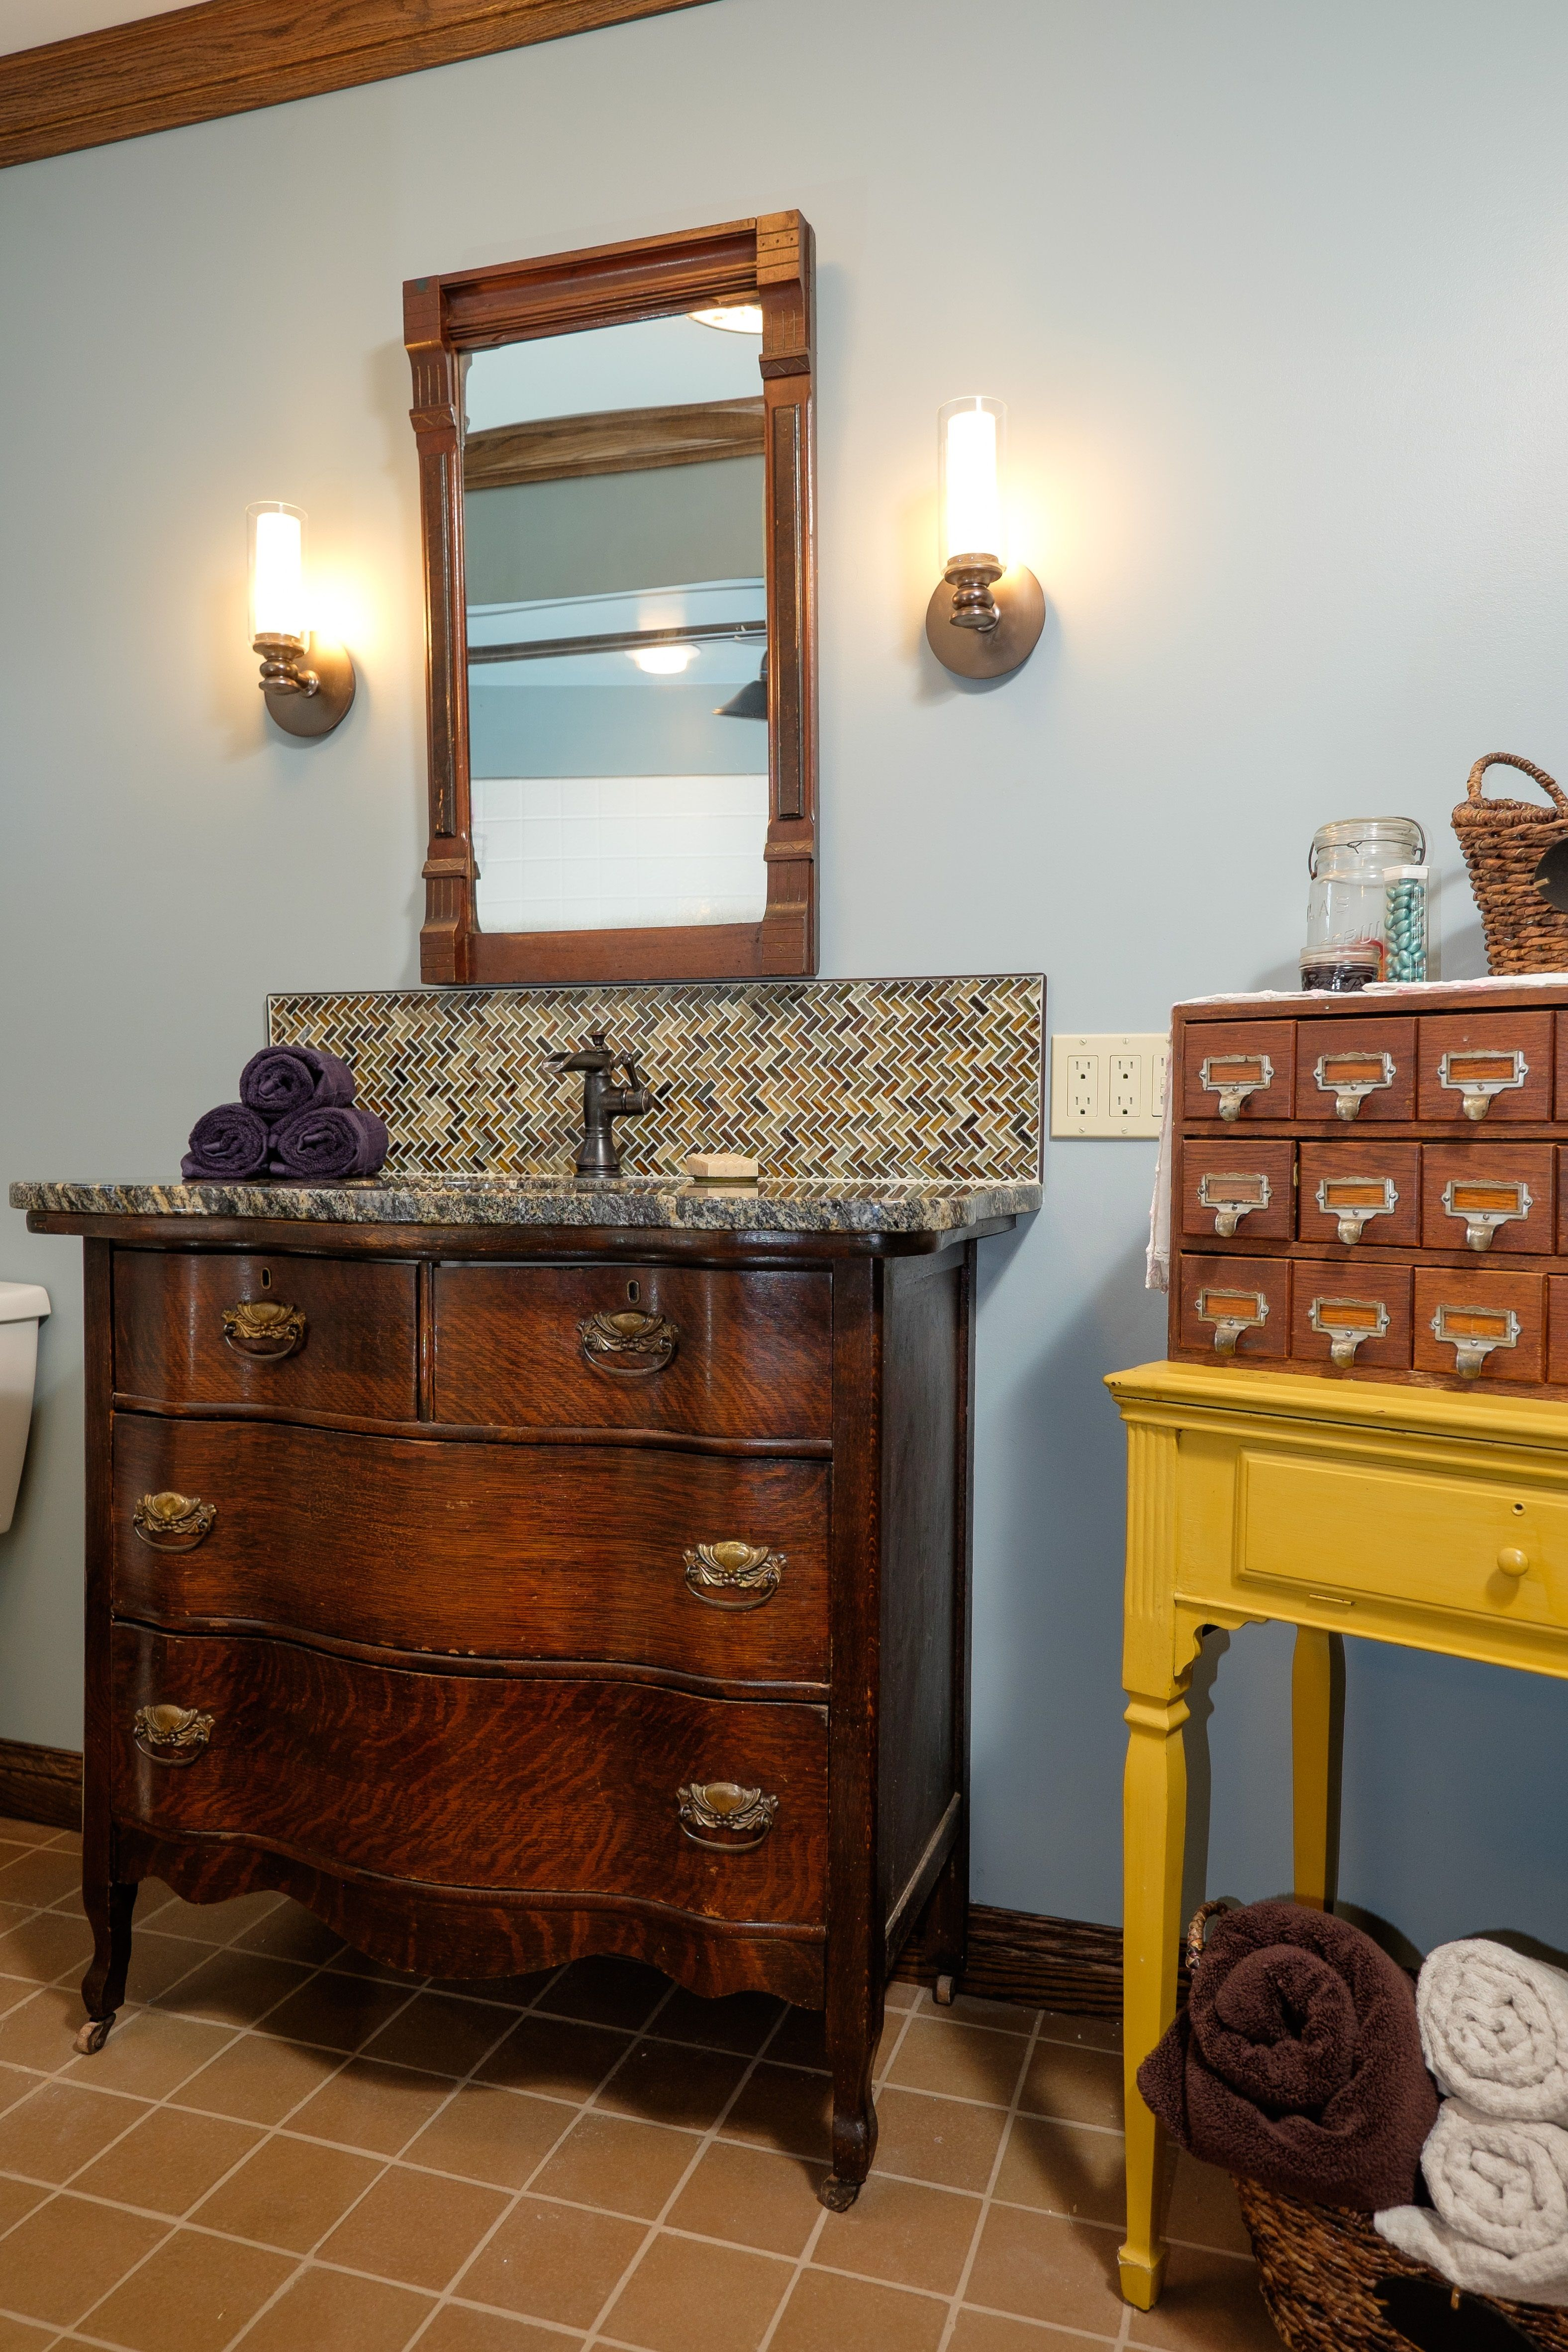 Eclectic antique Master Bathroom with custom fitted antique dresser